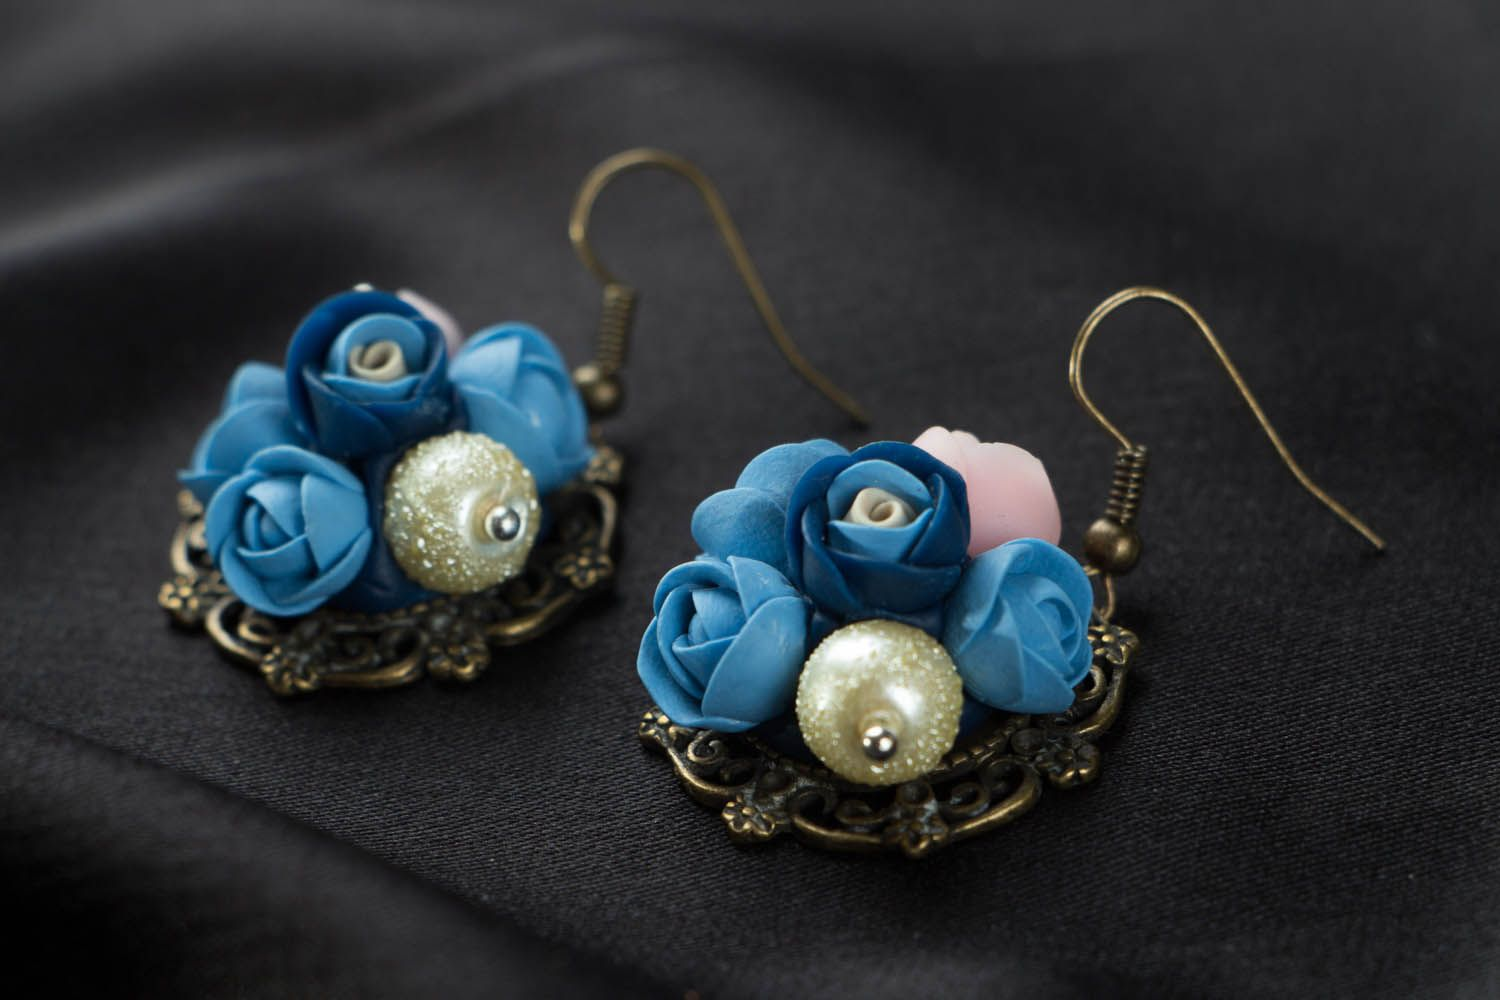 Flower earrings with charms  photo 2